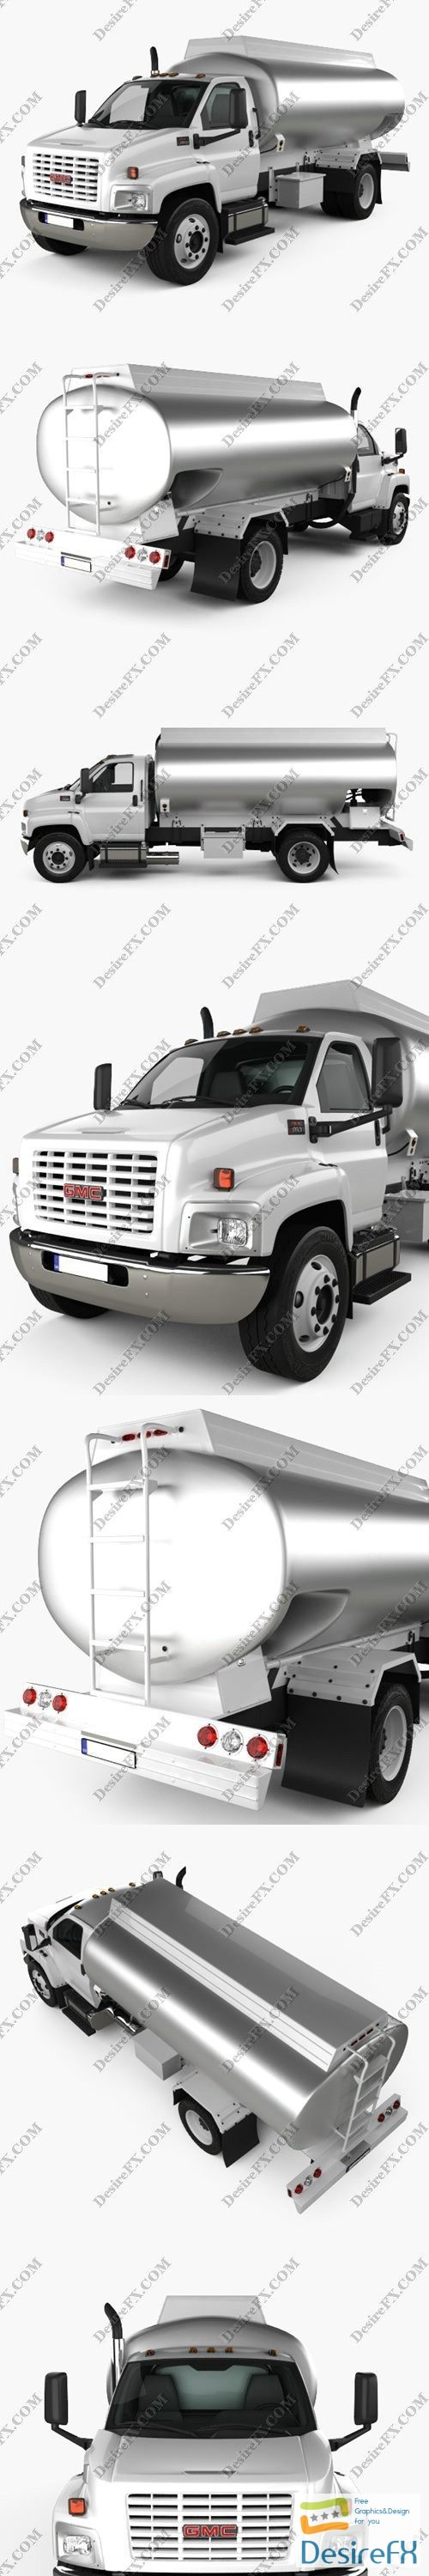 3d-models - GMC Topkick C8500 Regular Cab Tanker Truck 2004 3D Model